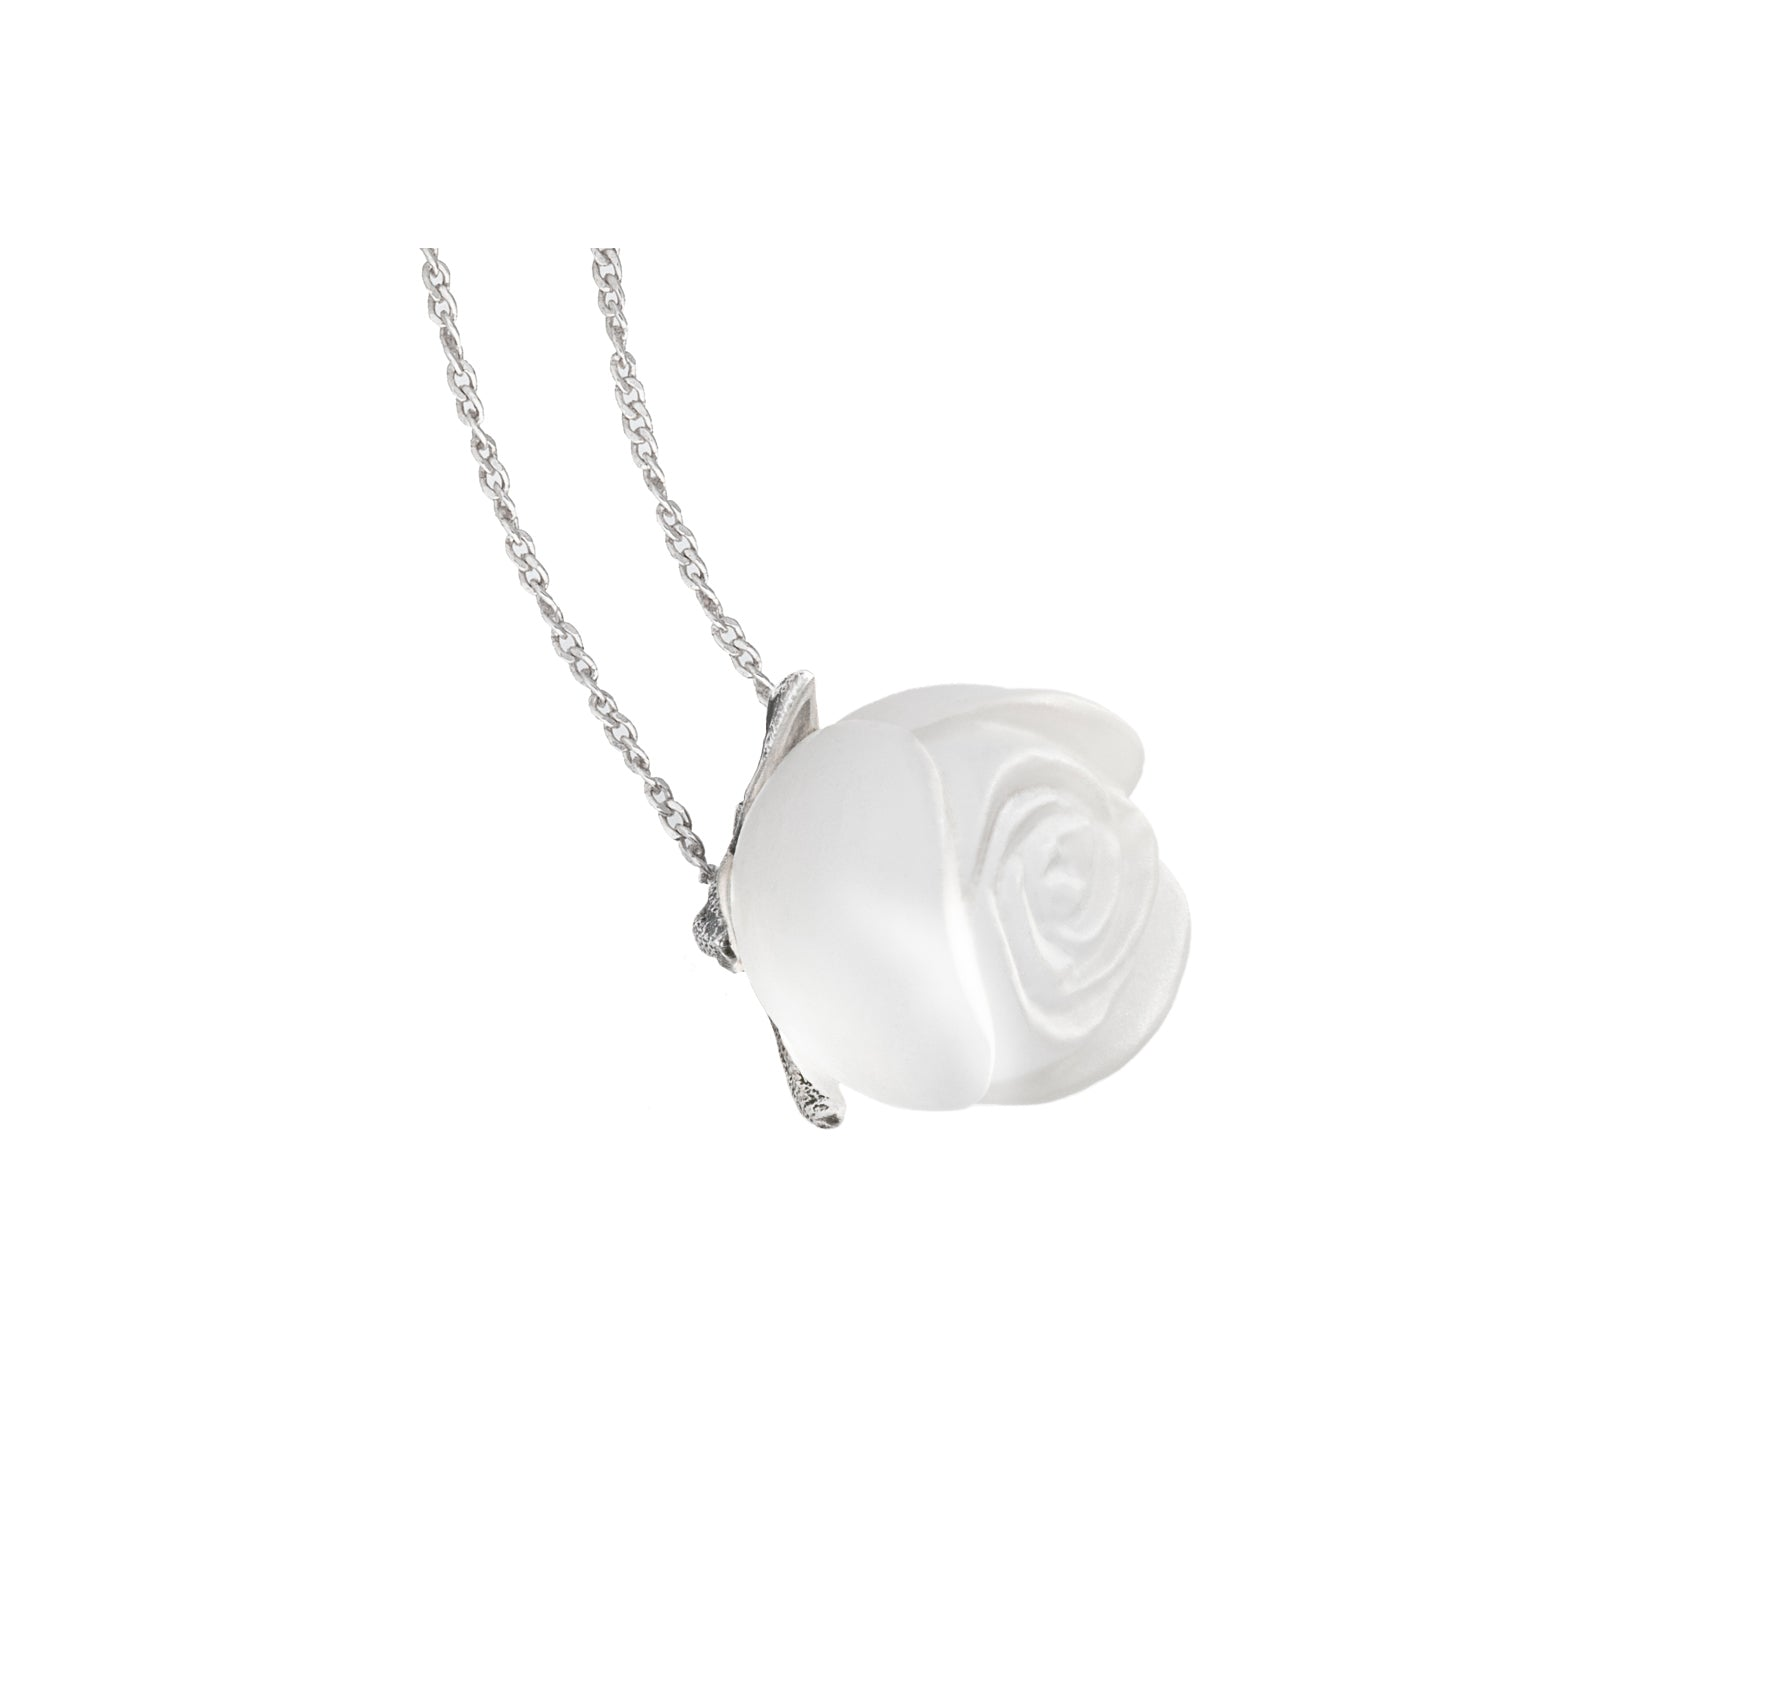 Crystal rose pendant in 18 KT white gold